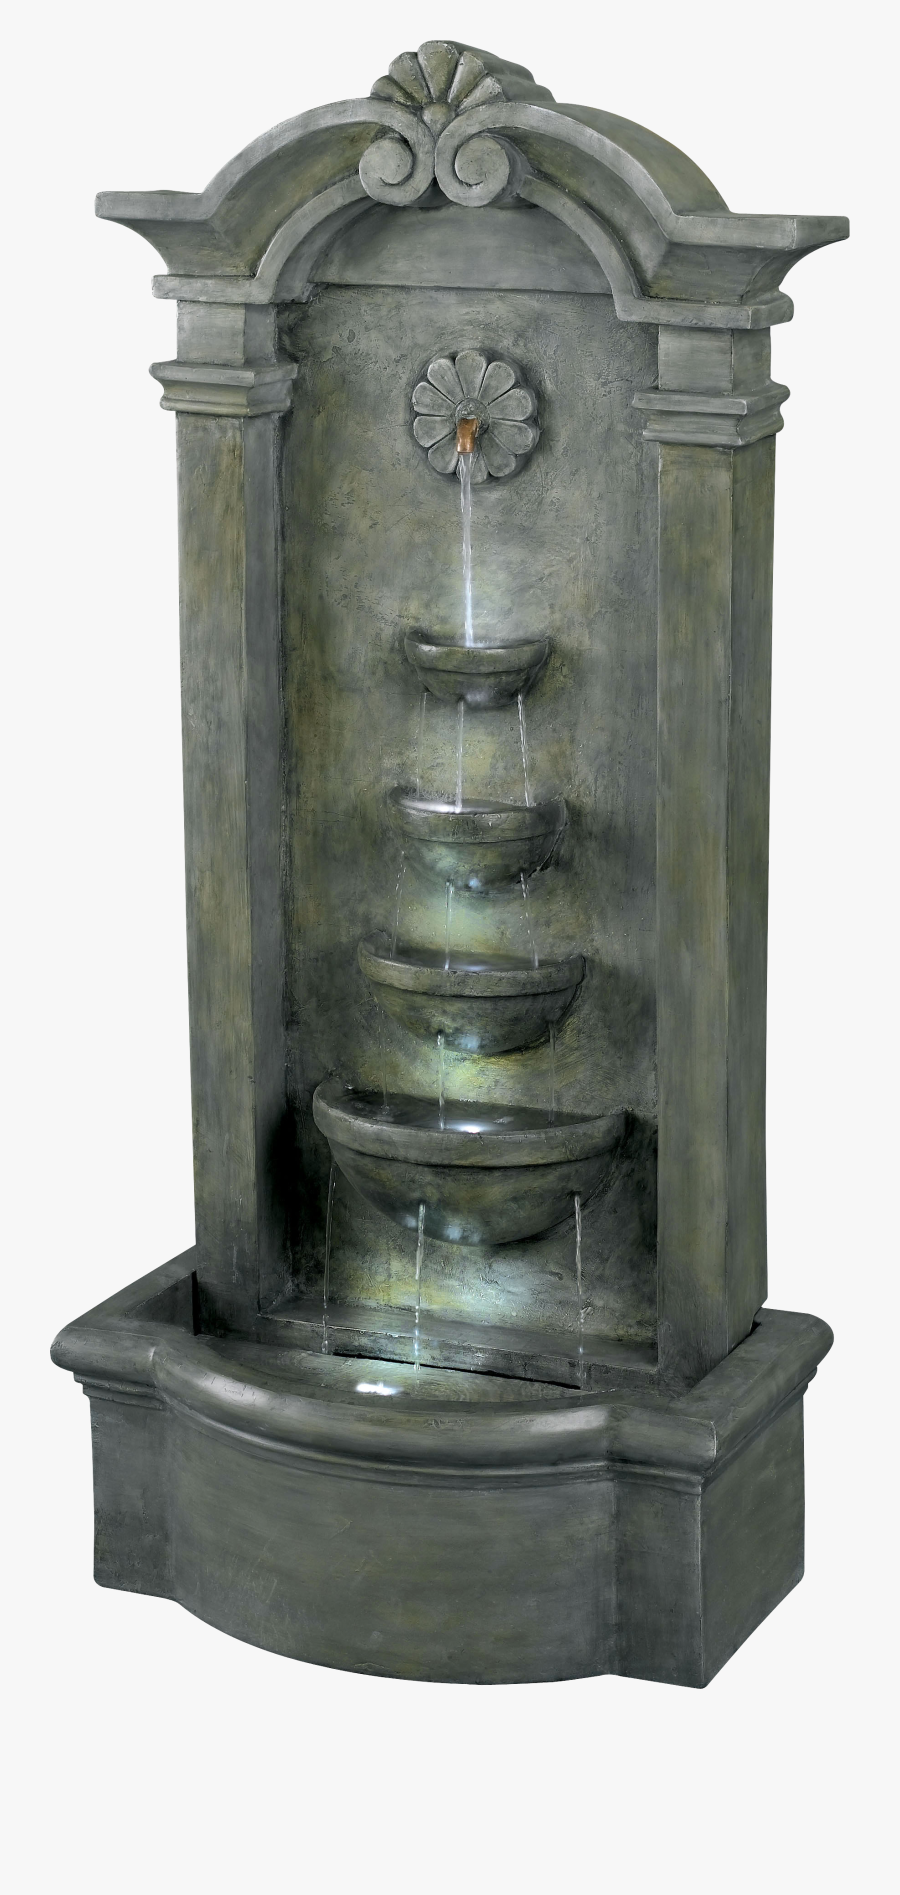 Fountain Png - Fountain, Transparent Clipart